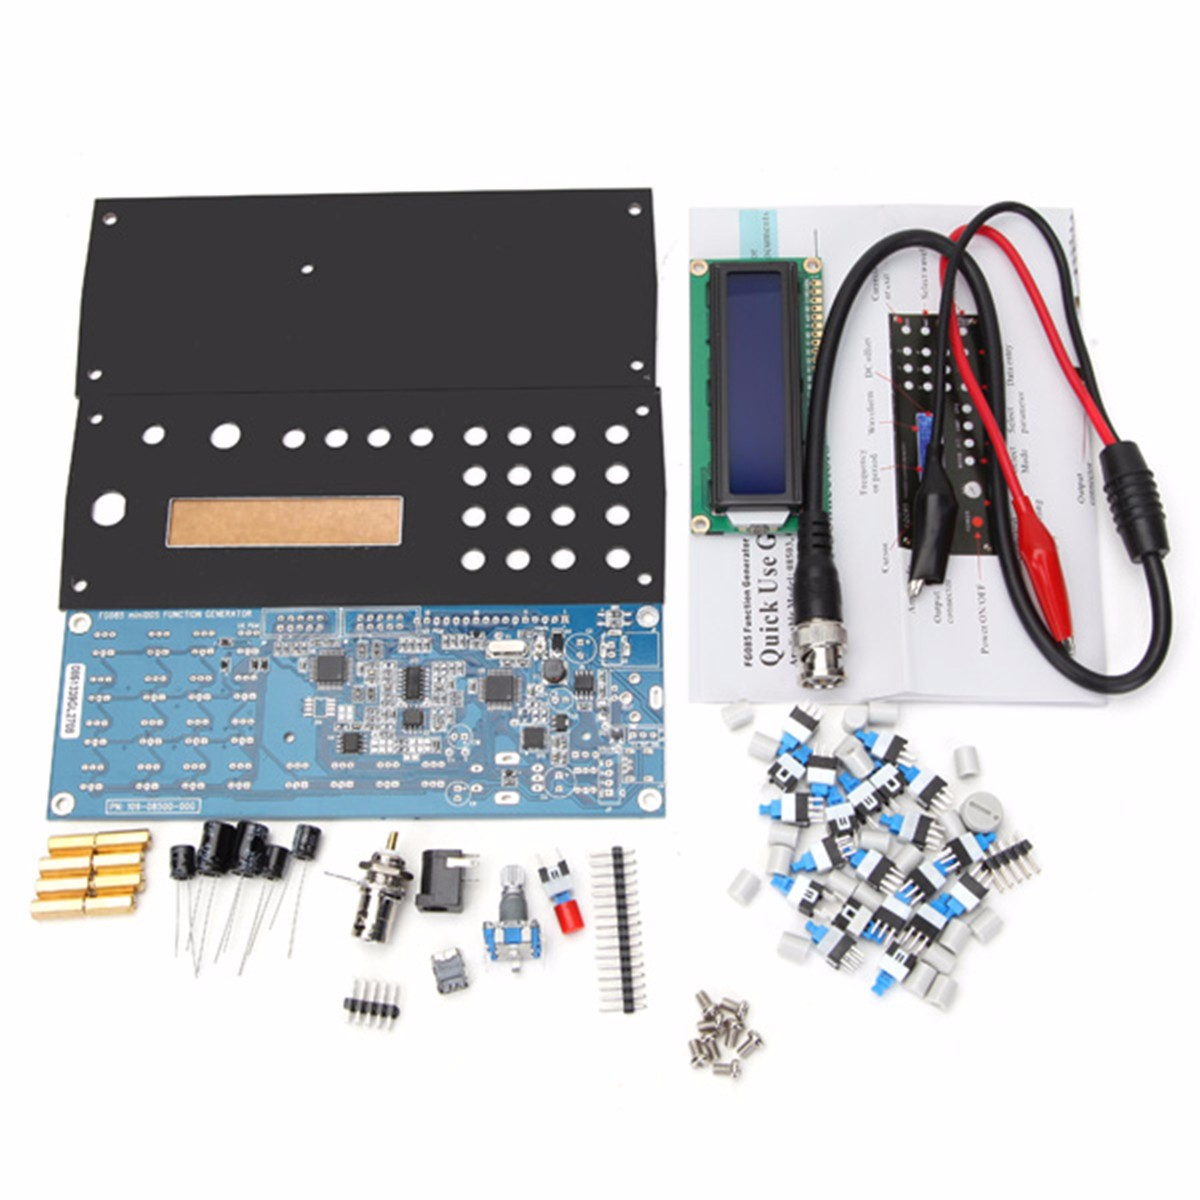 1 Set FG085 DDS Digital Synthesis Function Generator Unassembled DIY Kit With Panel High Quality шины continental contivancontact 100 195 70 r15 104 102r